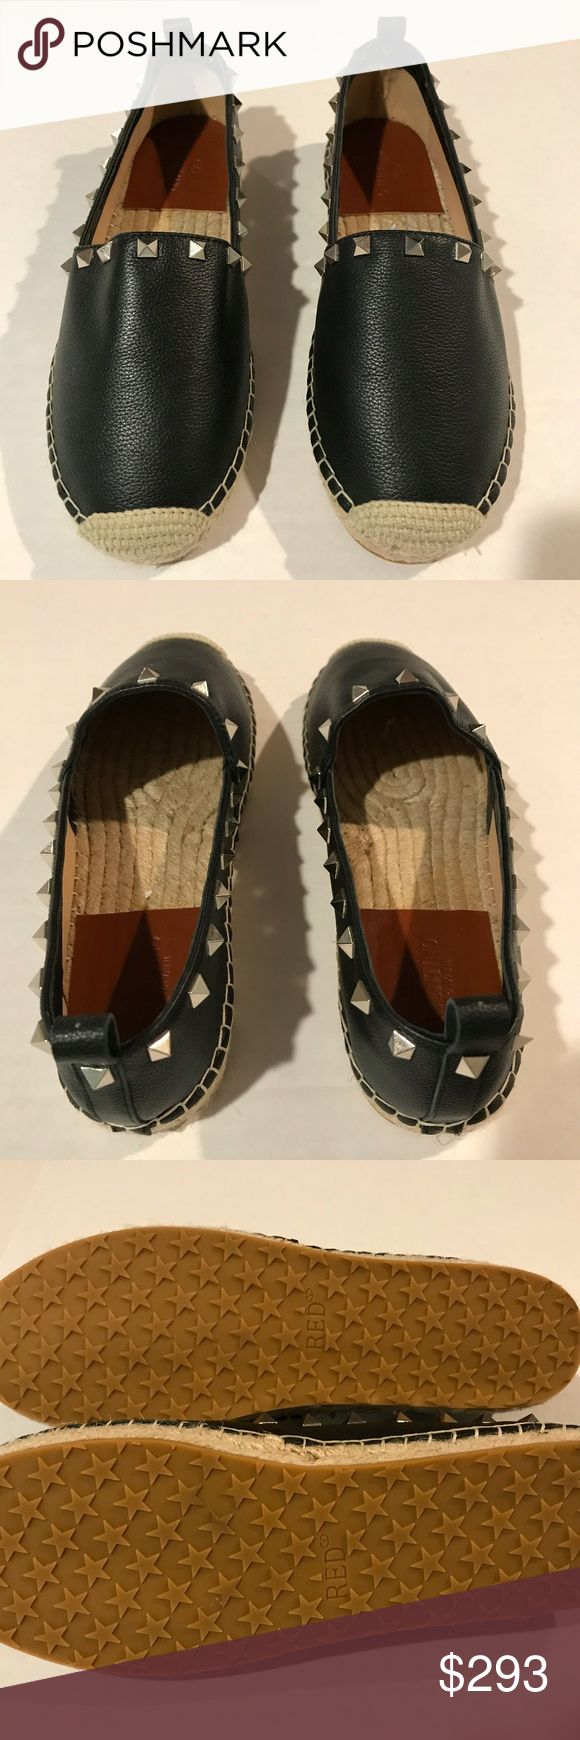 Valentino Rockstud Leather Espadrille Black 9 (US) Description: Black leather Valentino Rockstud round-toe espadrilles with featuring silver-tone pyramid stud embellishments, tonal stitching, jute soles and covered heels.   Condition: Excellent, new without tags  Designer: Valentino  PLEASE NOTE: Shoes' provenance remain unconfirmed, hence, their value pricing. Valeninto espadrilles retail for $895. Valentino Shoes Espadrilles